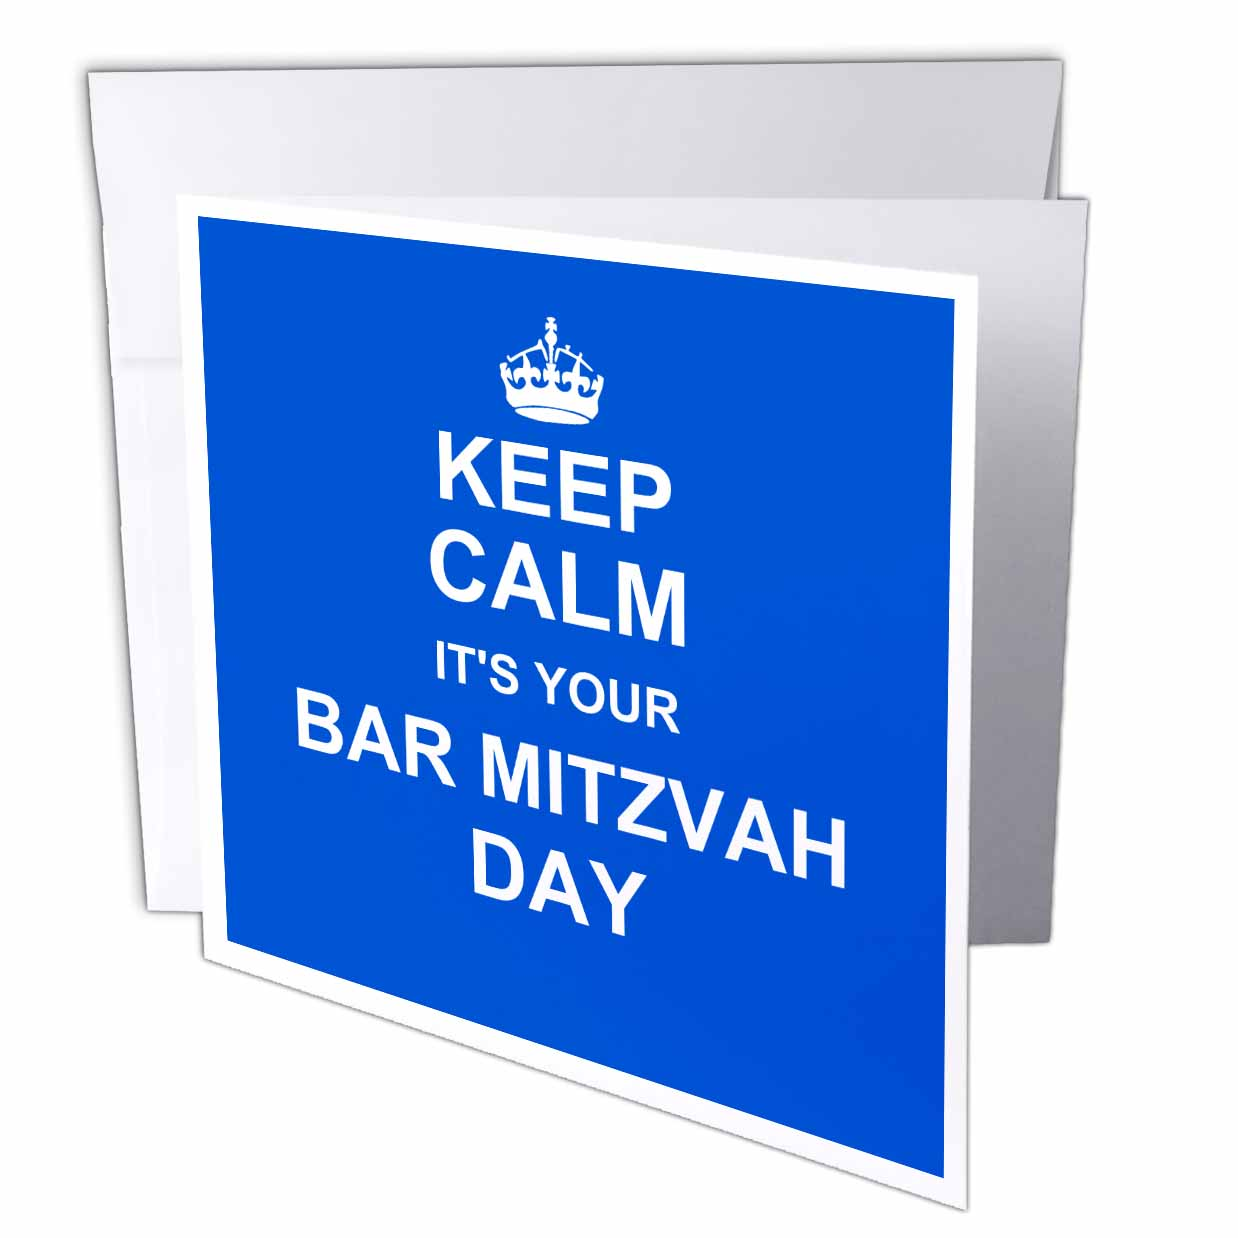 3dRose Keep Calm its your Bar Mitzvah day - blue - Good luck Encouraging message Boys Jewish 13th birthday, Greeting Cards, 6 x 6 inches, set of 12